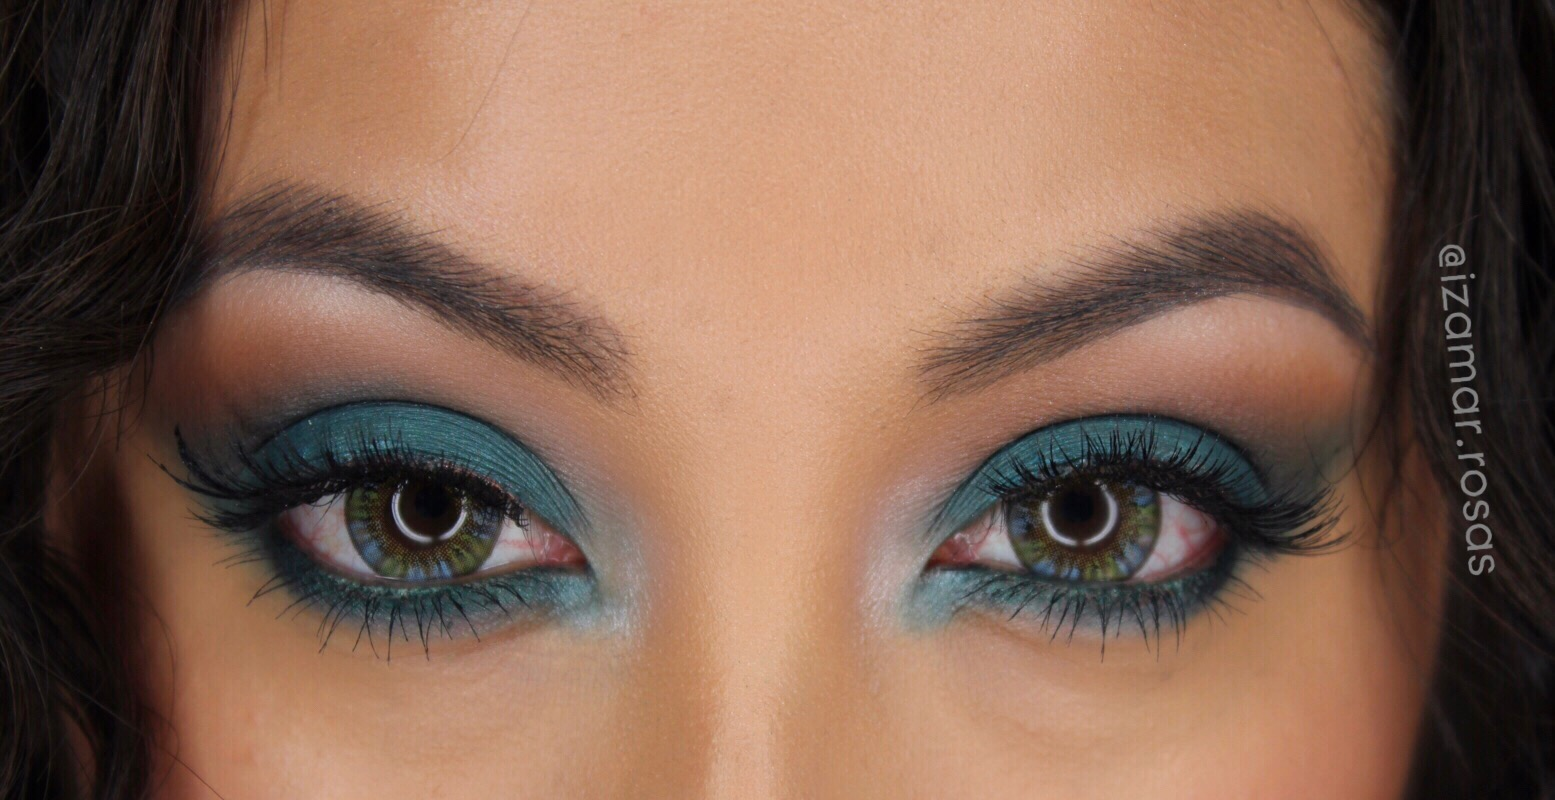 Rihanna's wild thoughts blue eye shadow inspiration